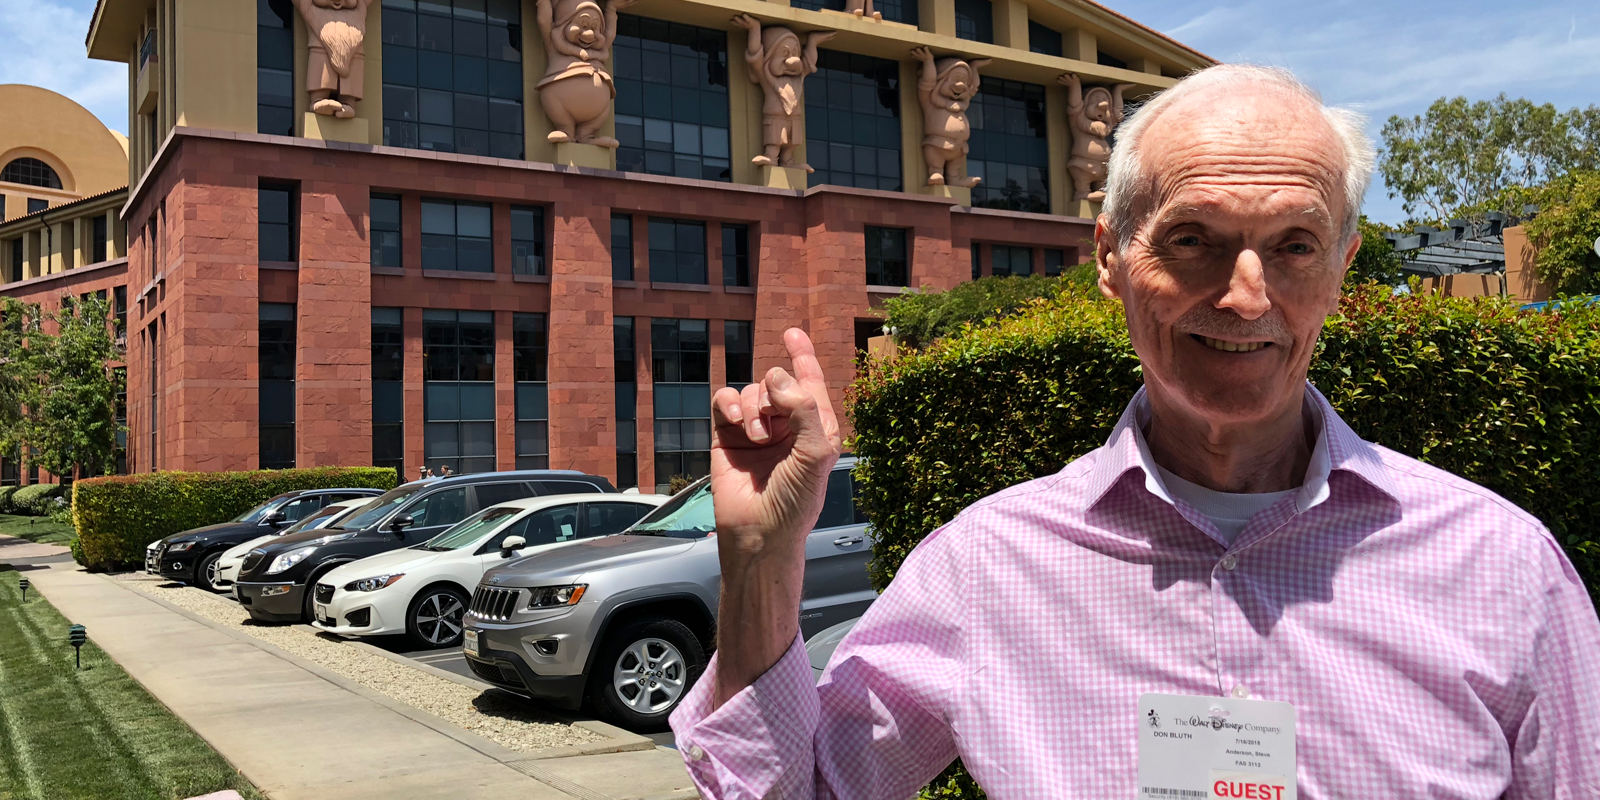 Don Bluth Returns to Walt Disney Animation Studios After 40 Years